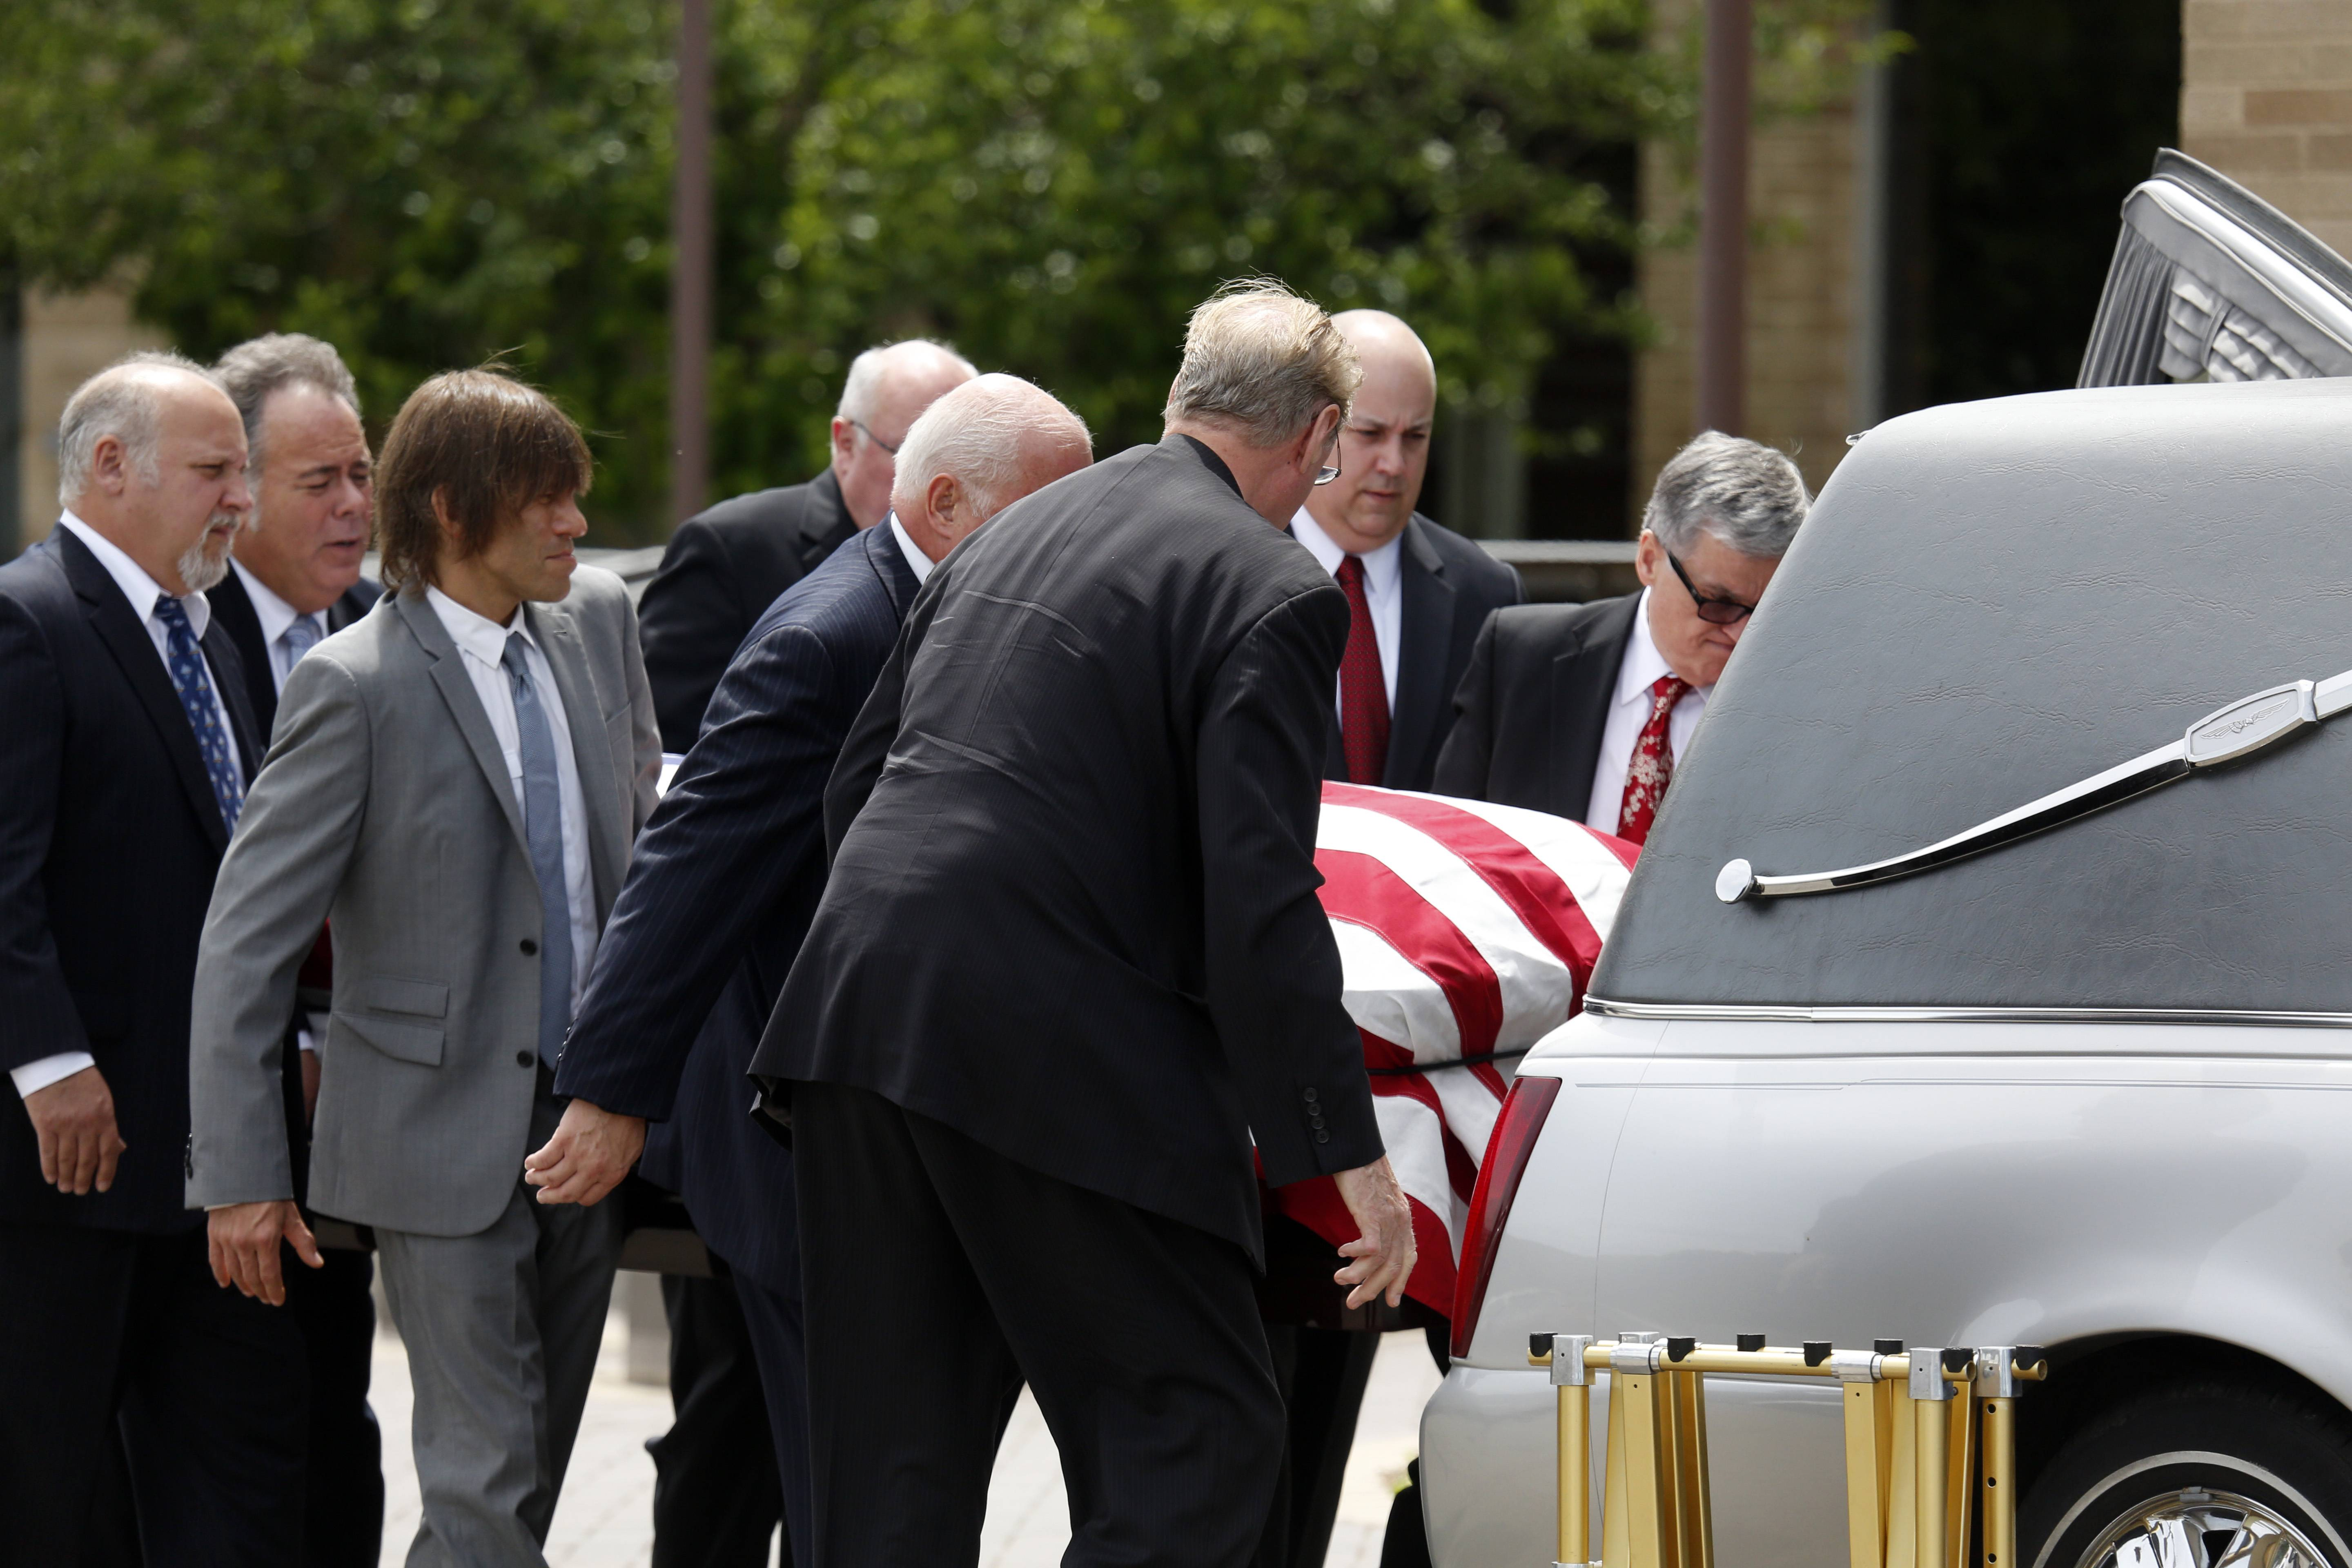 Jack Roeser was generous to a fault, never ceasing to give to causes and people he believed in, loved ones said at his funeral service Tuesday morning.